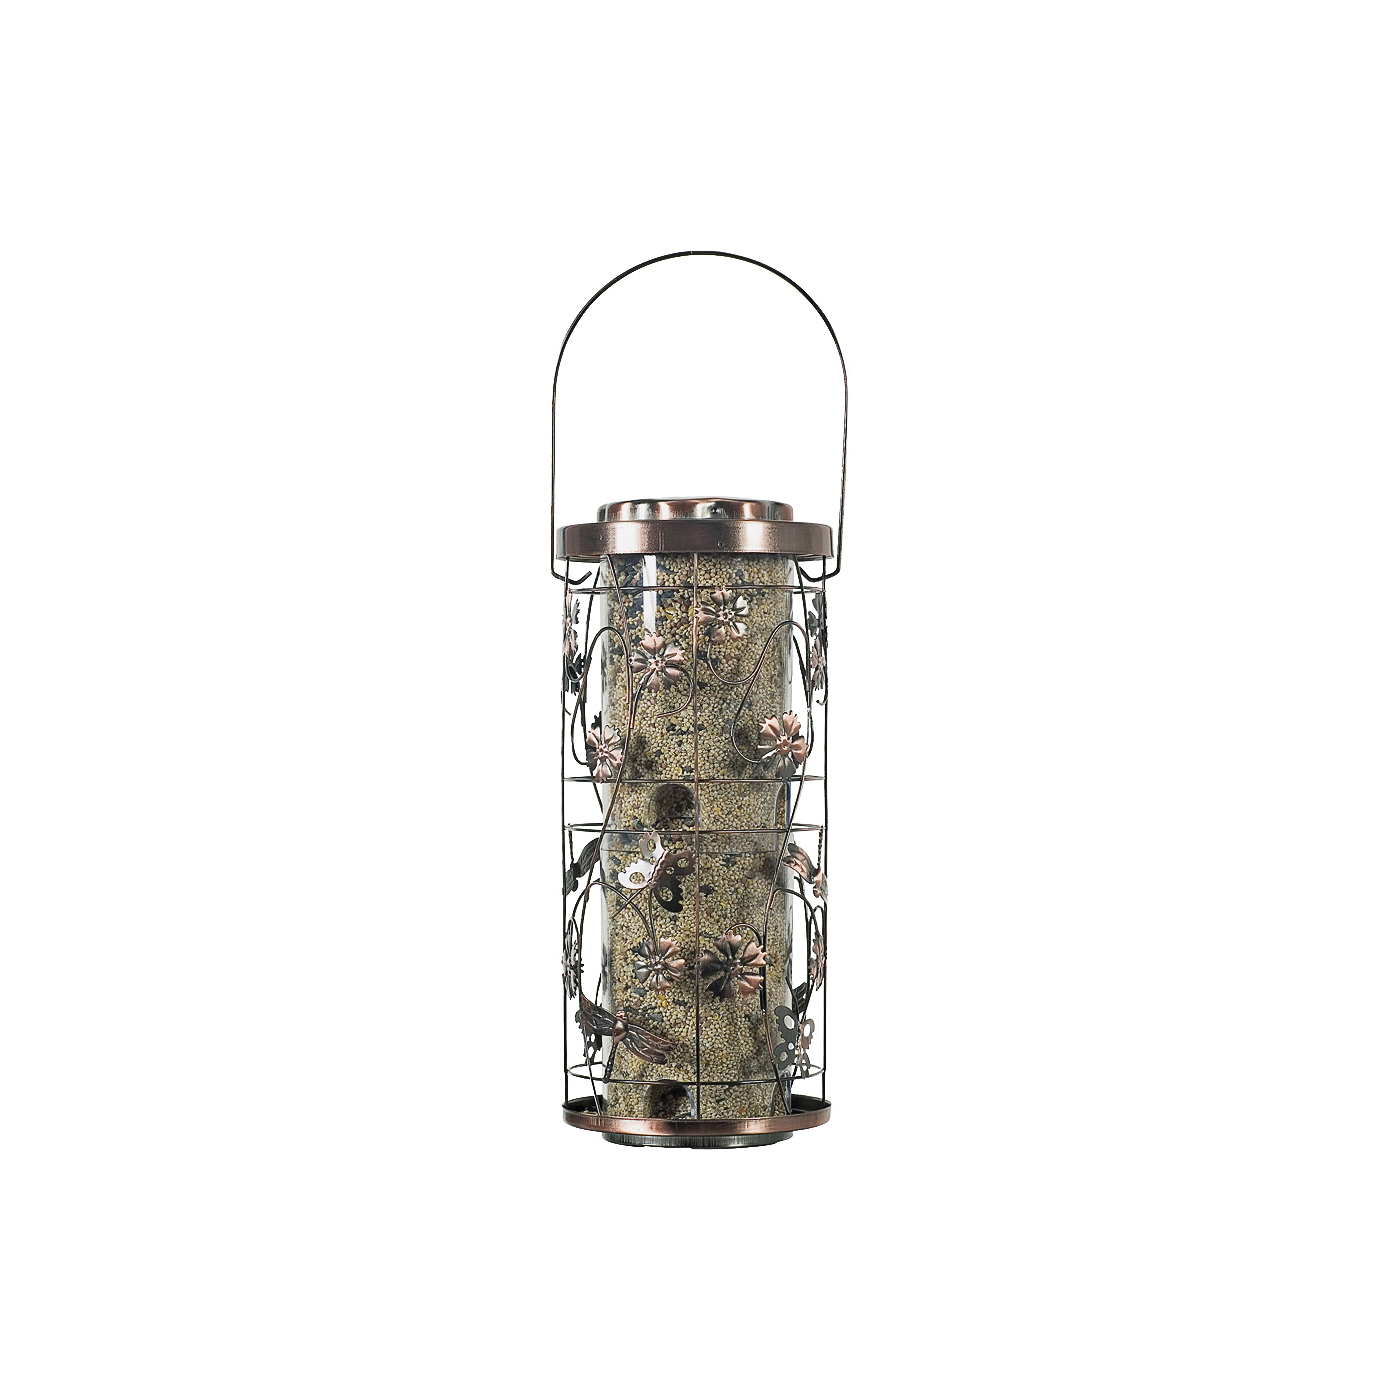 Picture of Perky-Pet 570 Wild Bird Feeder, 4 lb, Antique Copper, Hanging Mounting